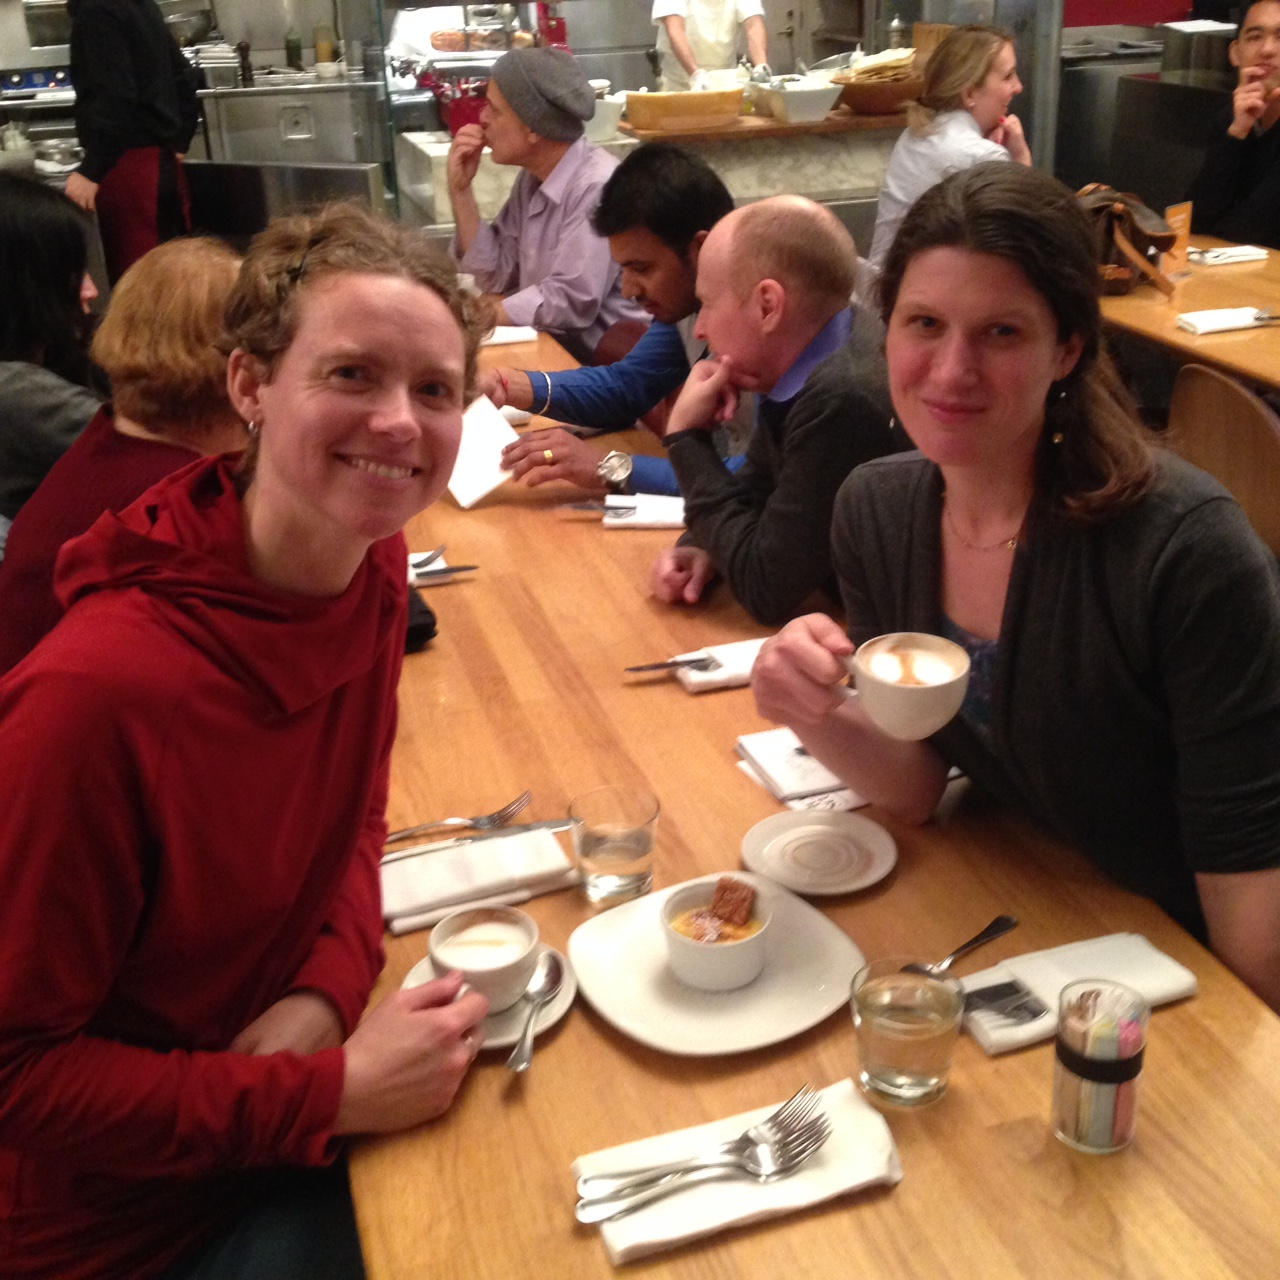 Debriefing afterwards over cappuccinos in the museum cafe.